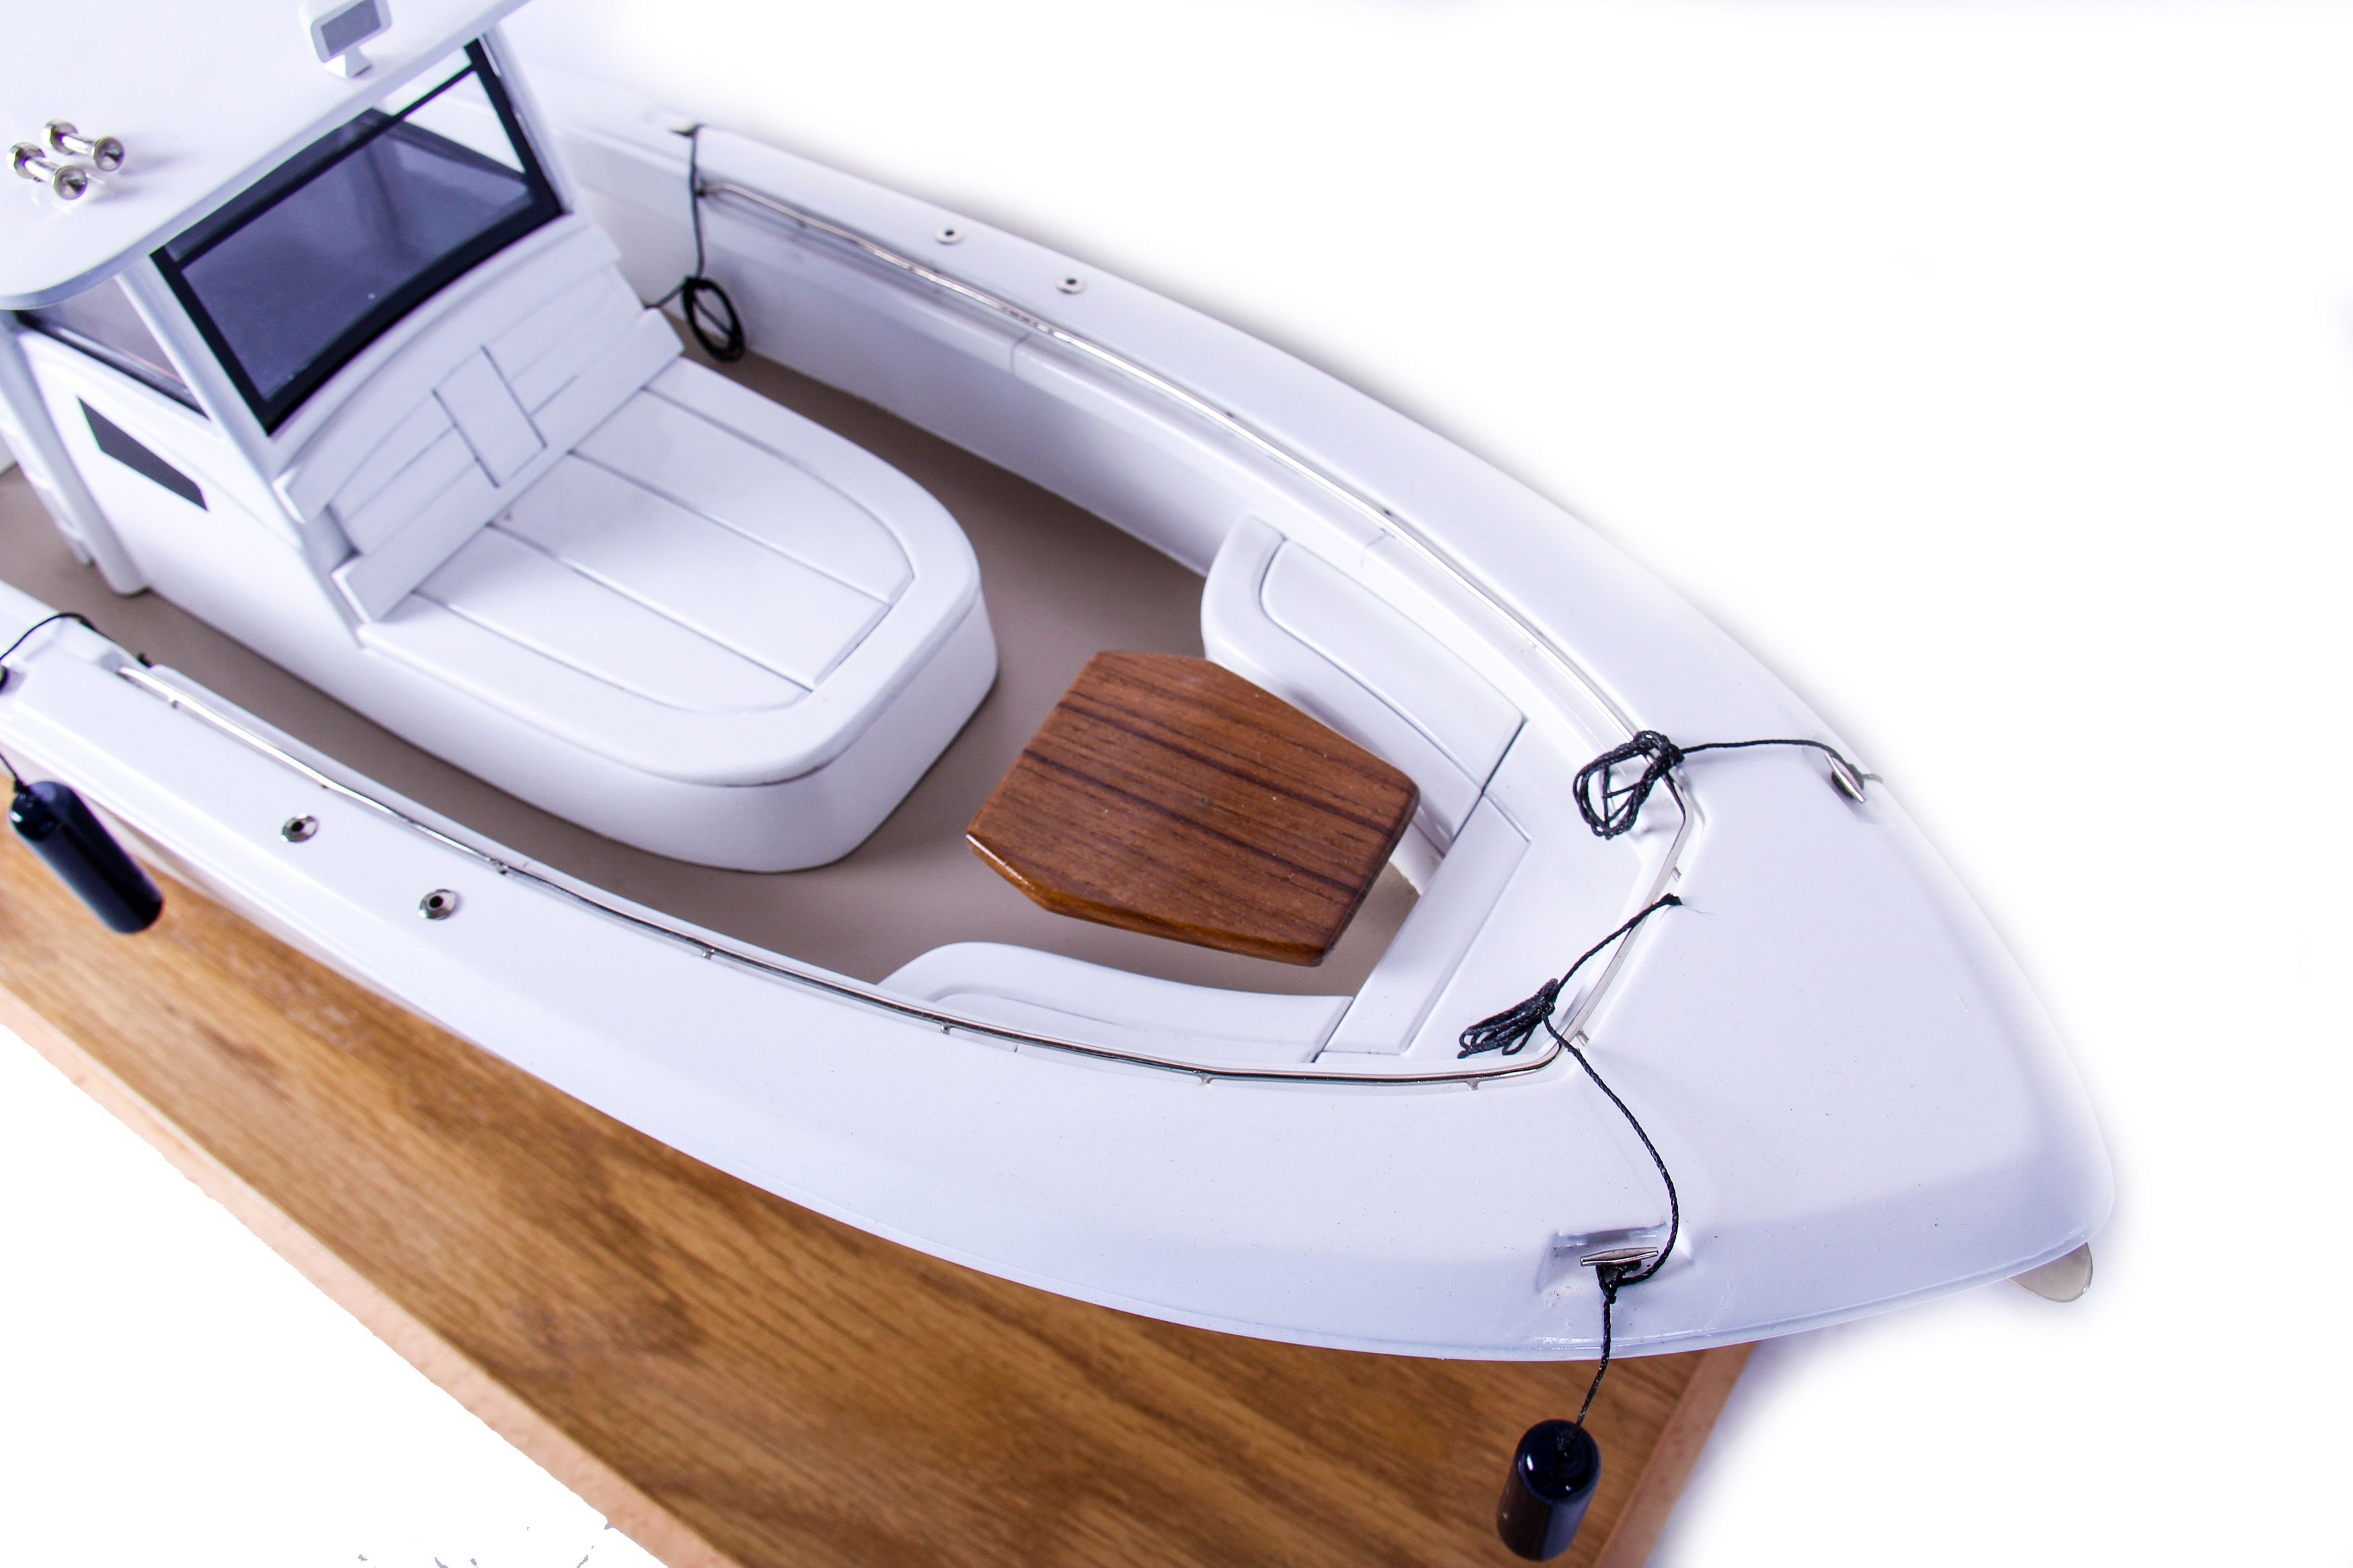 1686-9520-Boston-Whaler-Outrage-370-Model-Boat